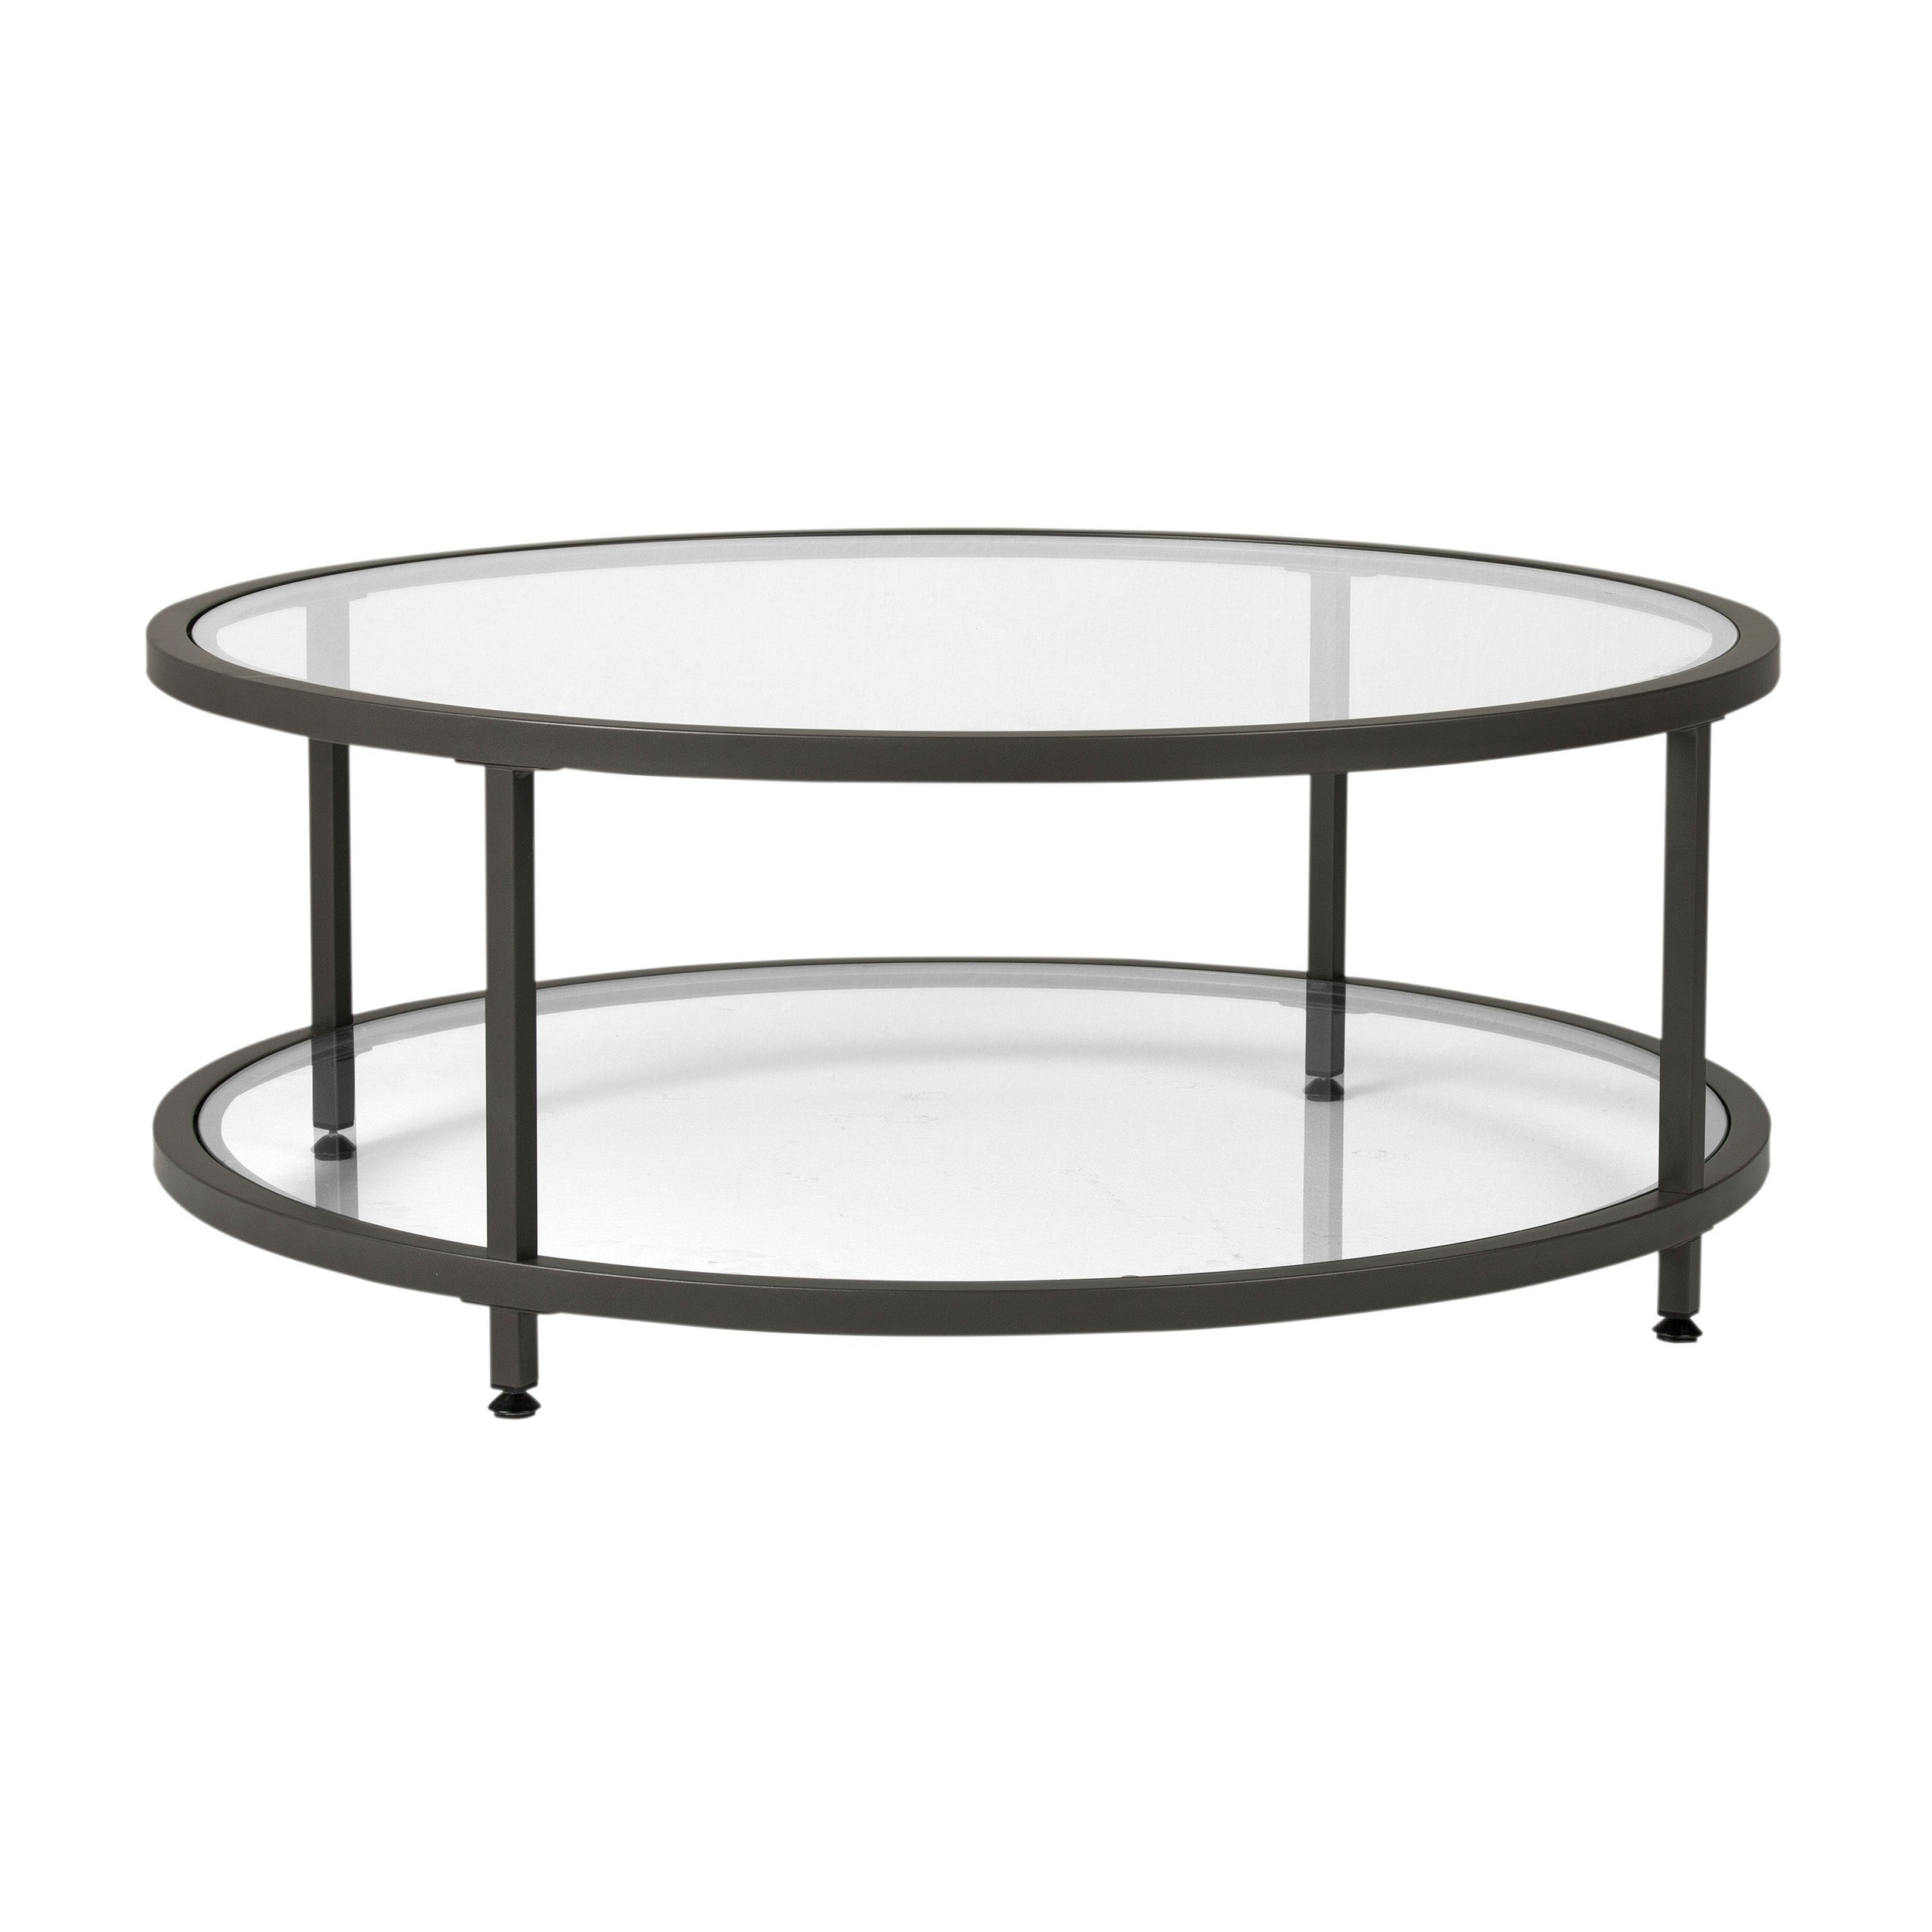 Carbon Loft Heimlich Pewter Steel/glass Round Coffee Table With Best And Newest Carbon Loft Heimlich Pewter Steel/glass Round Coffee Tables (View 10 of 20)